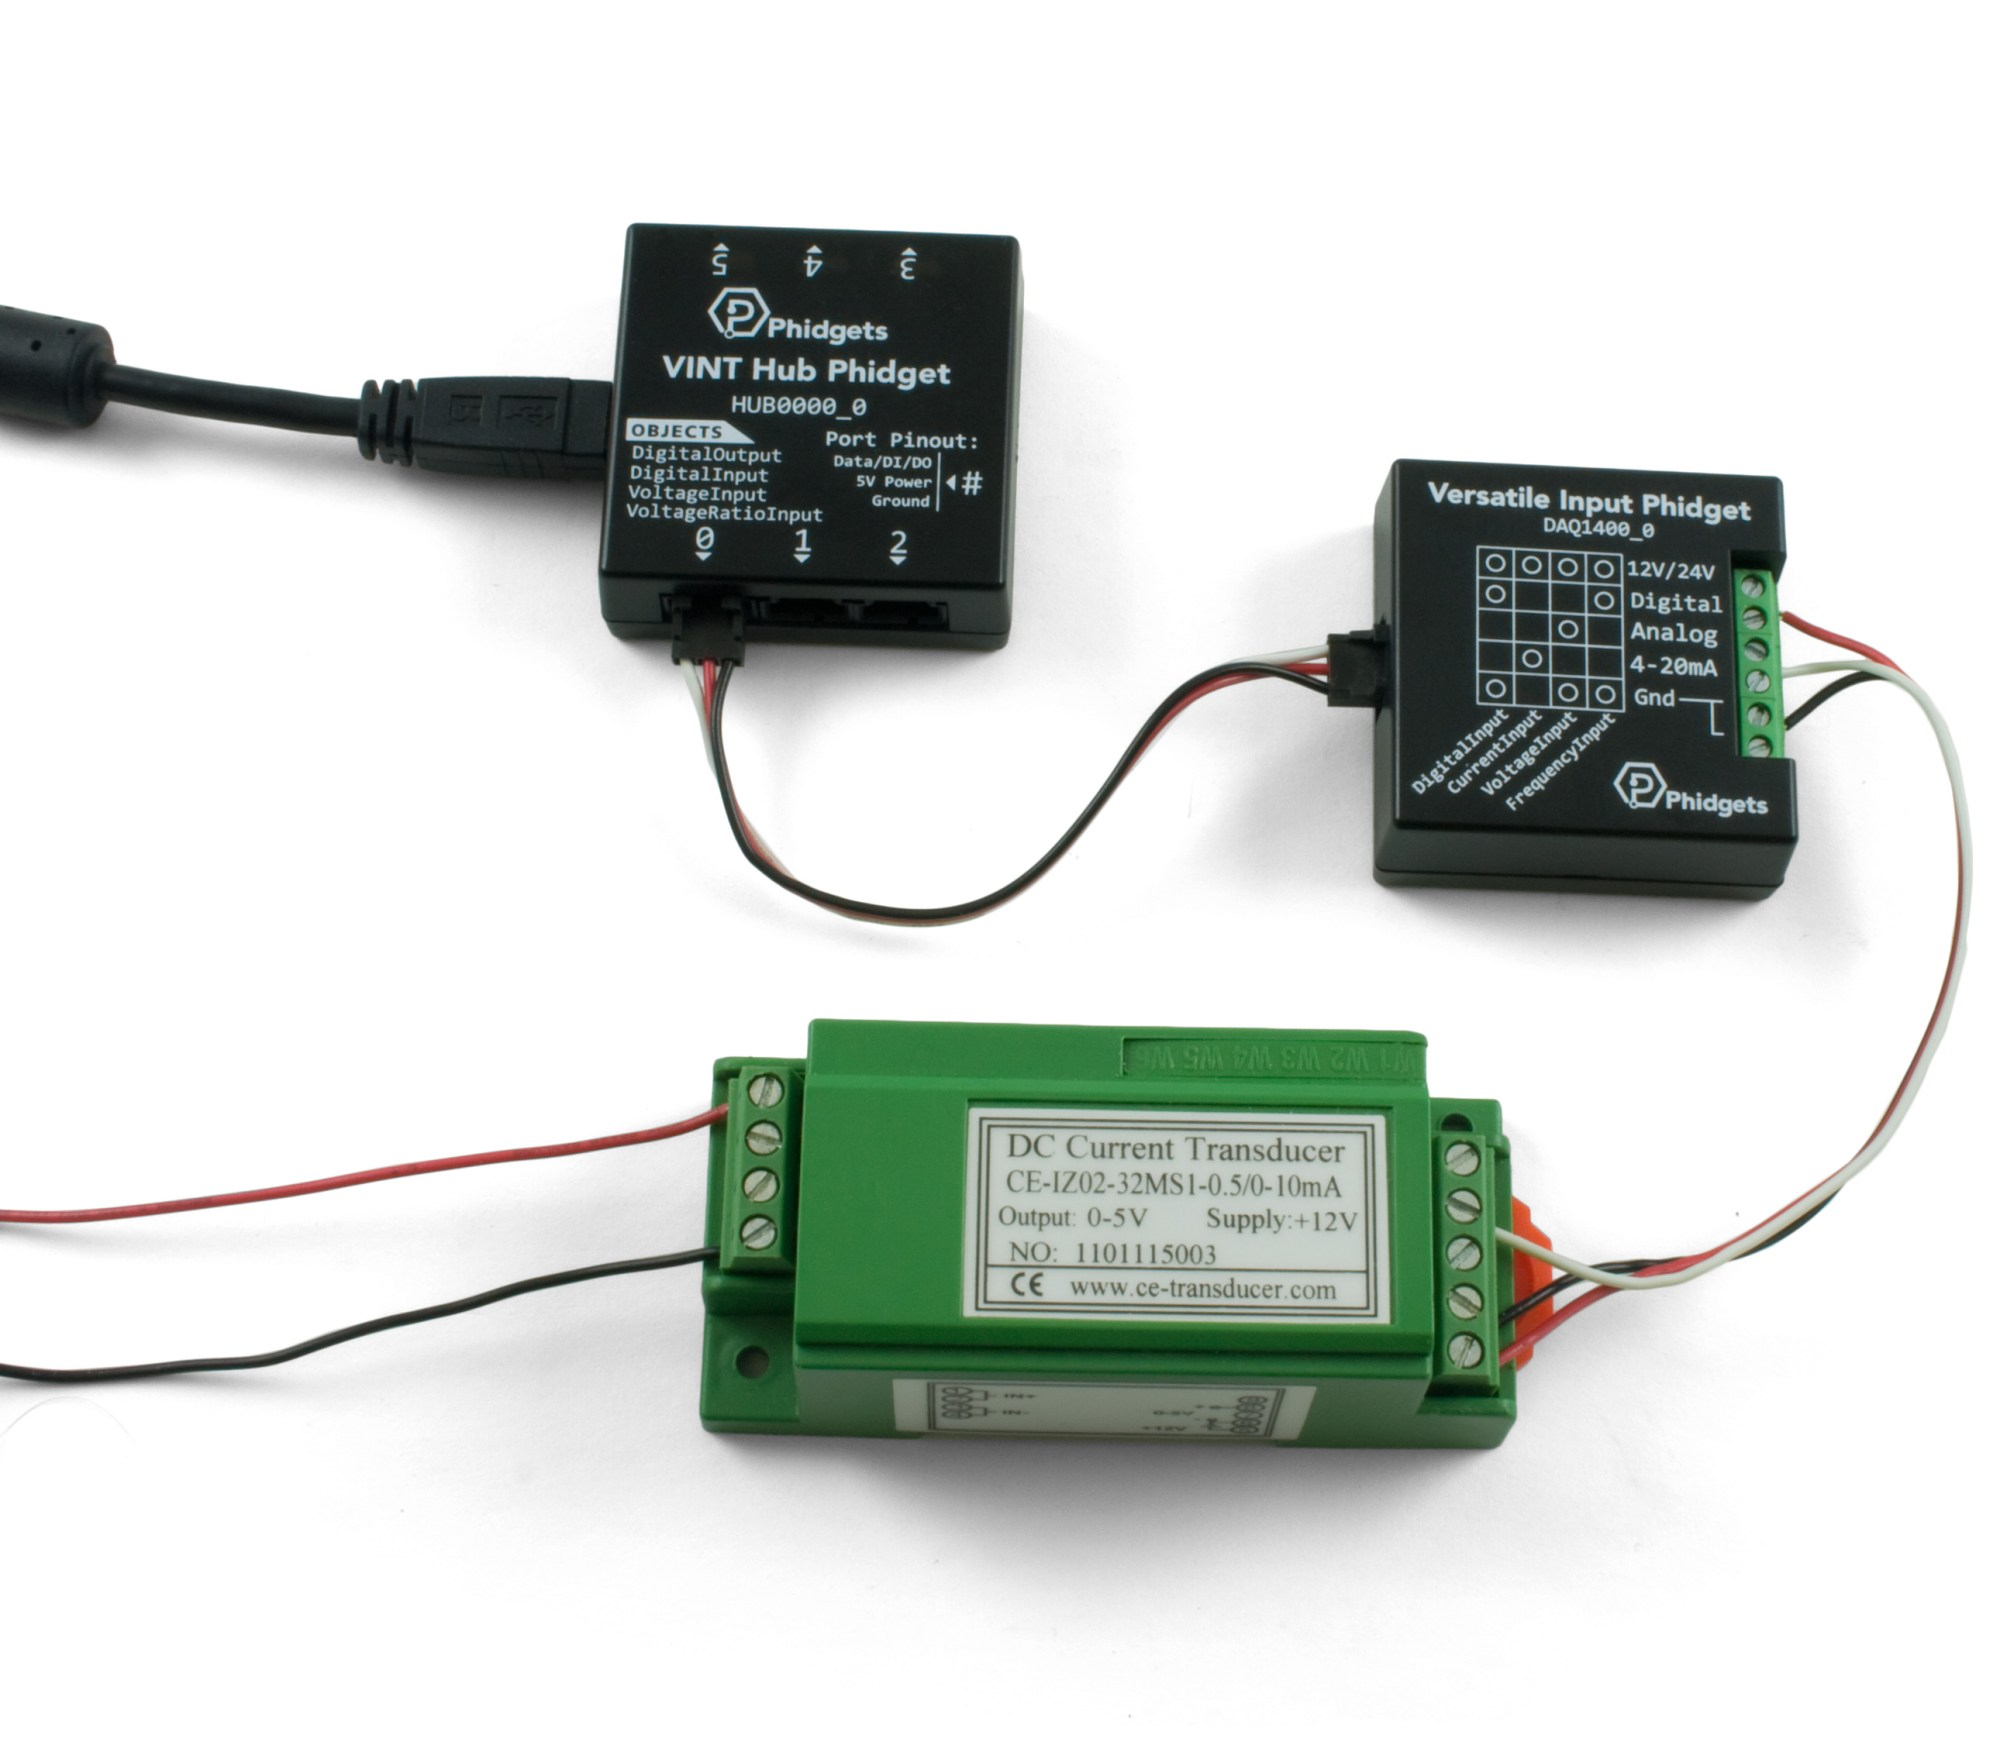 hight resolution of alternatively you can use the versatile input phidget which is a vint controlled device that can interface a wide variety of sensors